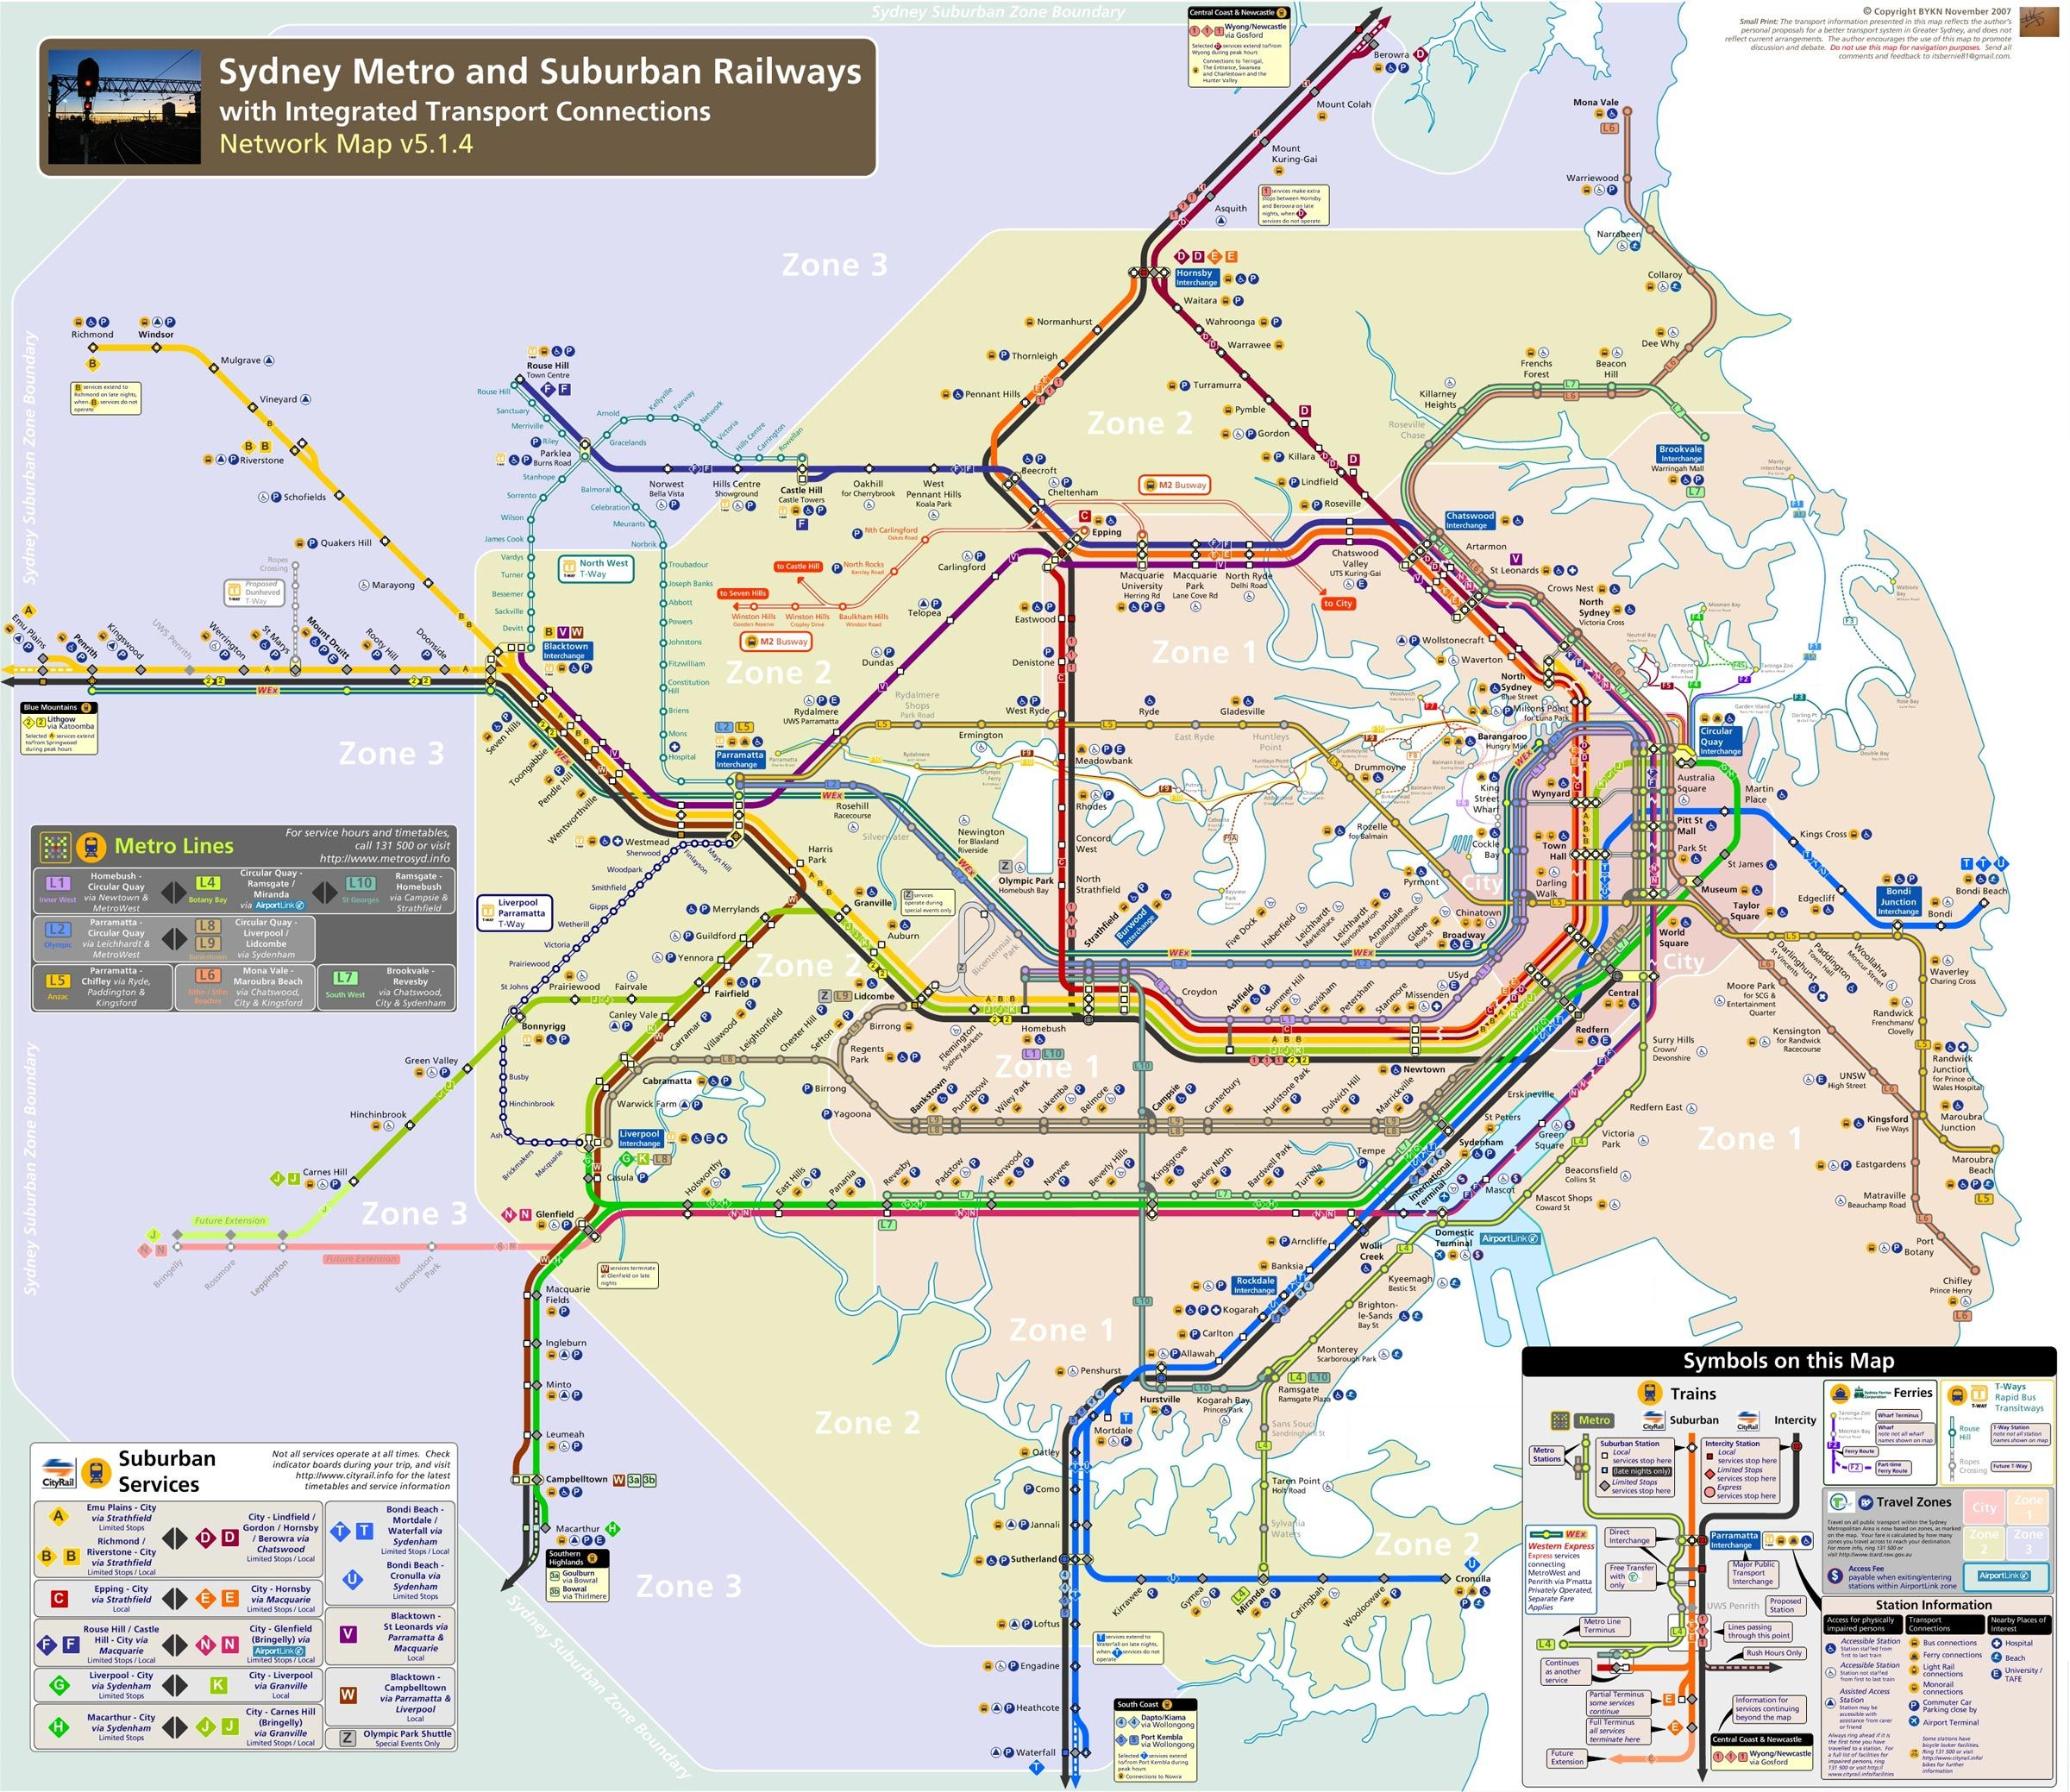 Sidney | I Maps in 2019 | Train map, Sydney metro, Map on city bike map, city mall map, city thameslink map, city train set, city train line drawing,